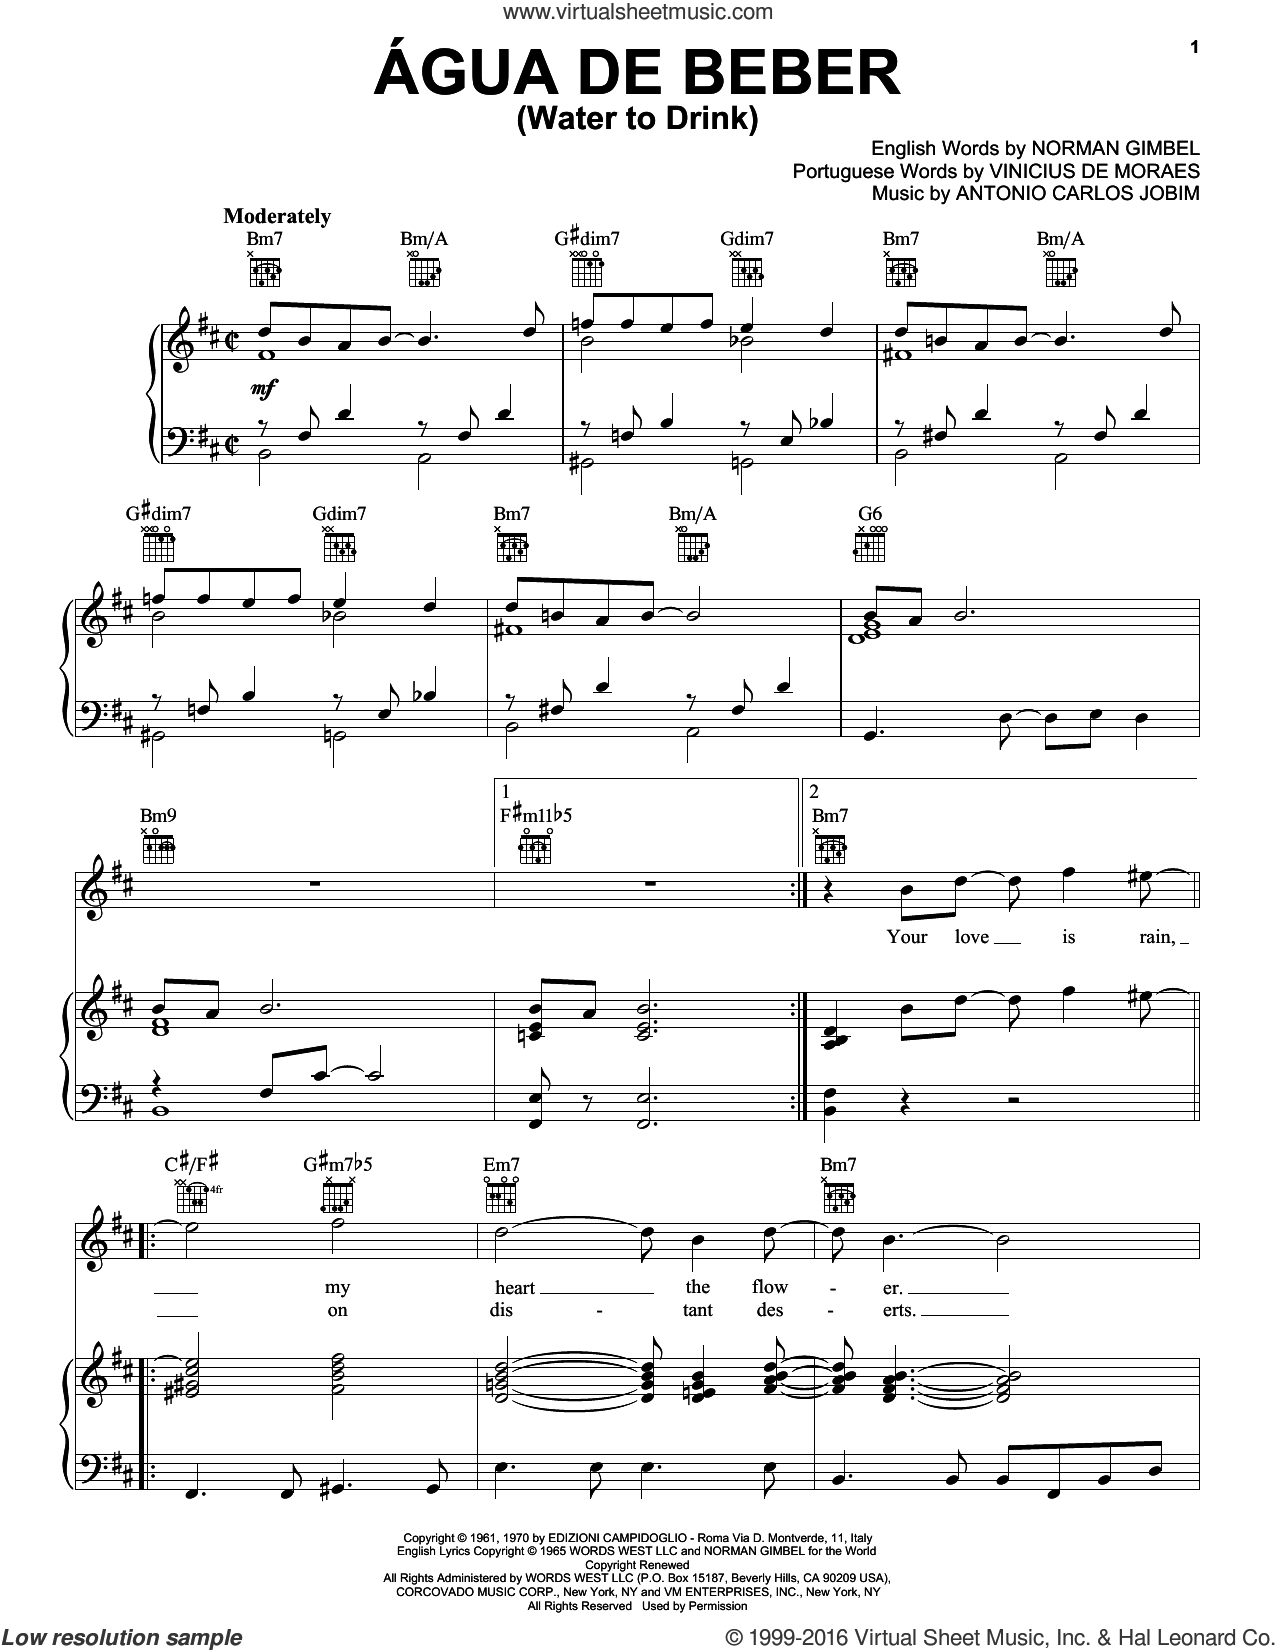 Agua De Beber (Water To Drink) sheet music for voice, piano or guitar by Vinicius de Moraes, Antonio Carlos Jobim and Norman Gimbel. Score Image Preview.